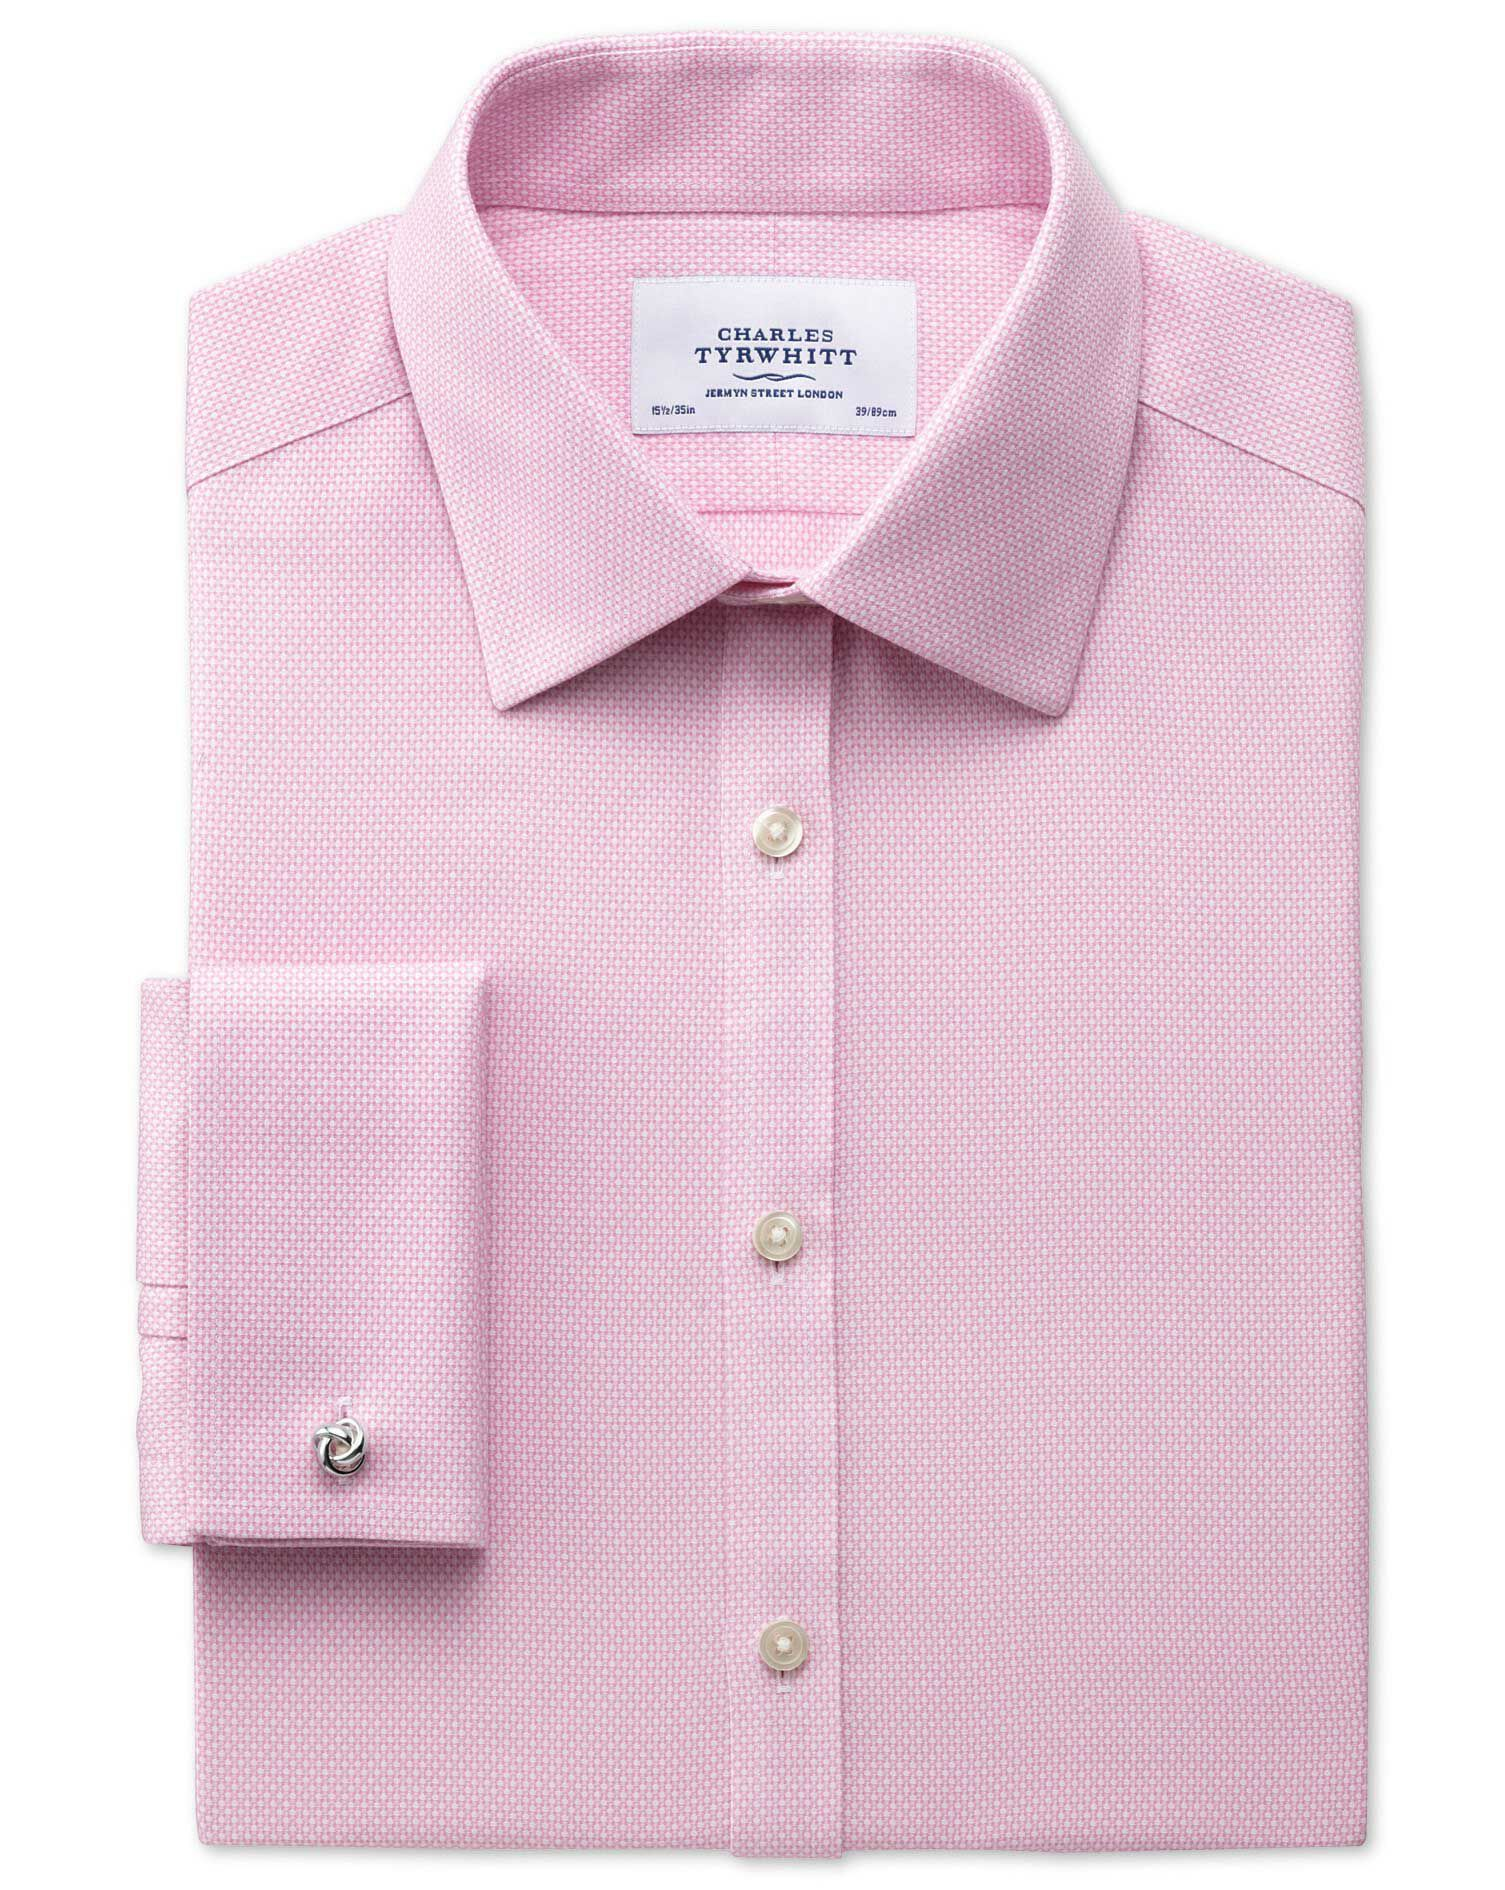 Classic Fit Non-Iron Honeycomb Pink Cotton Formal Shirt Double Cuff Size 17/37 by Charles Tyrwhitt